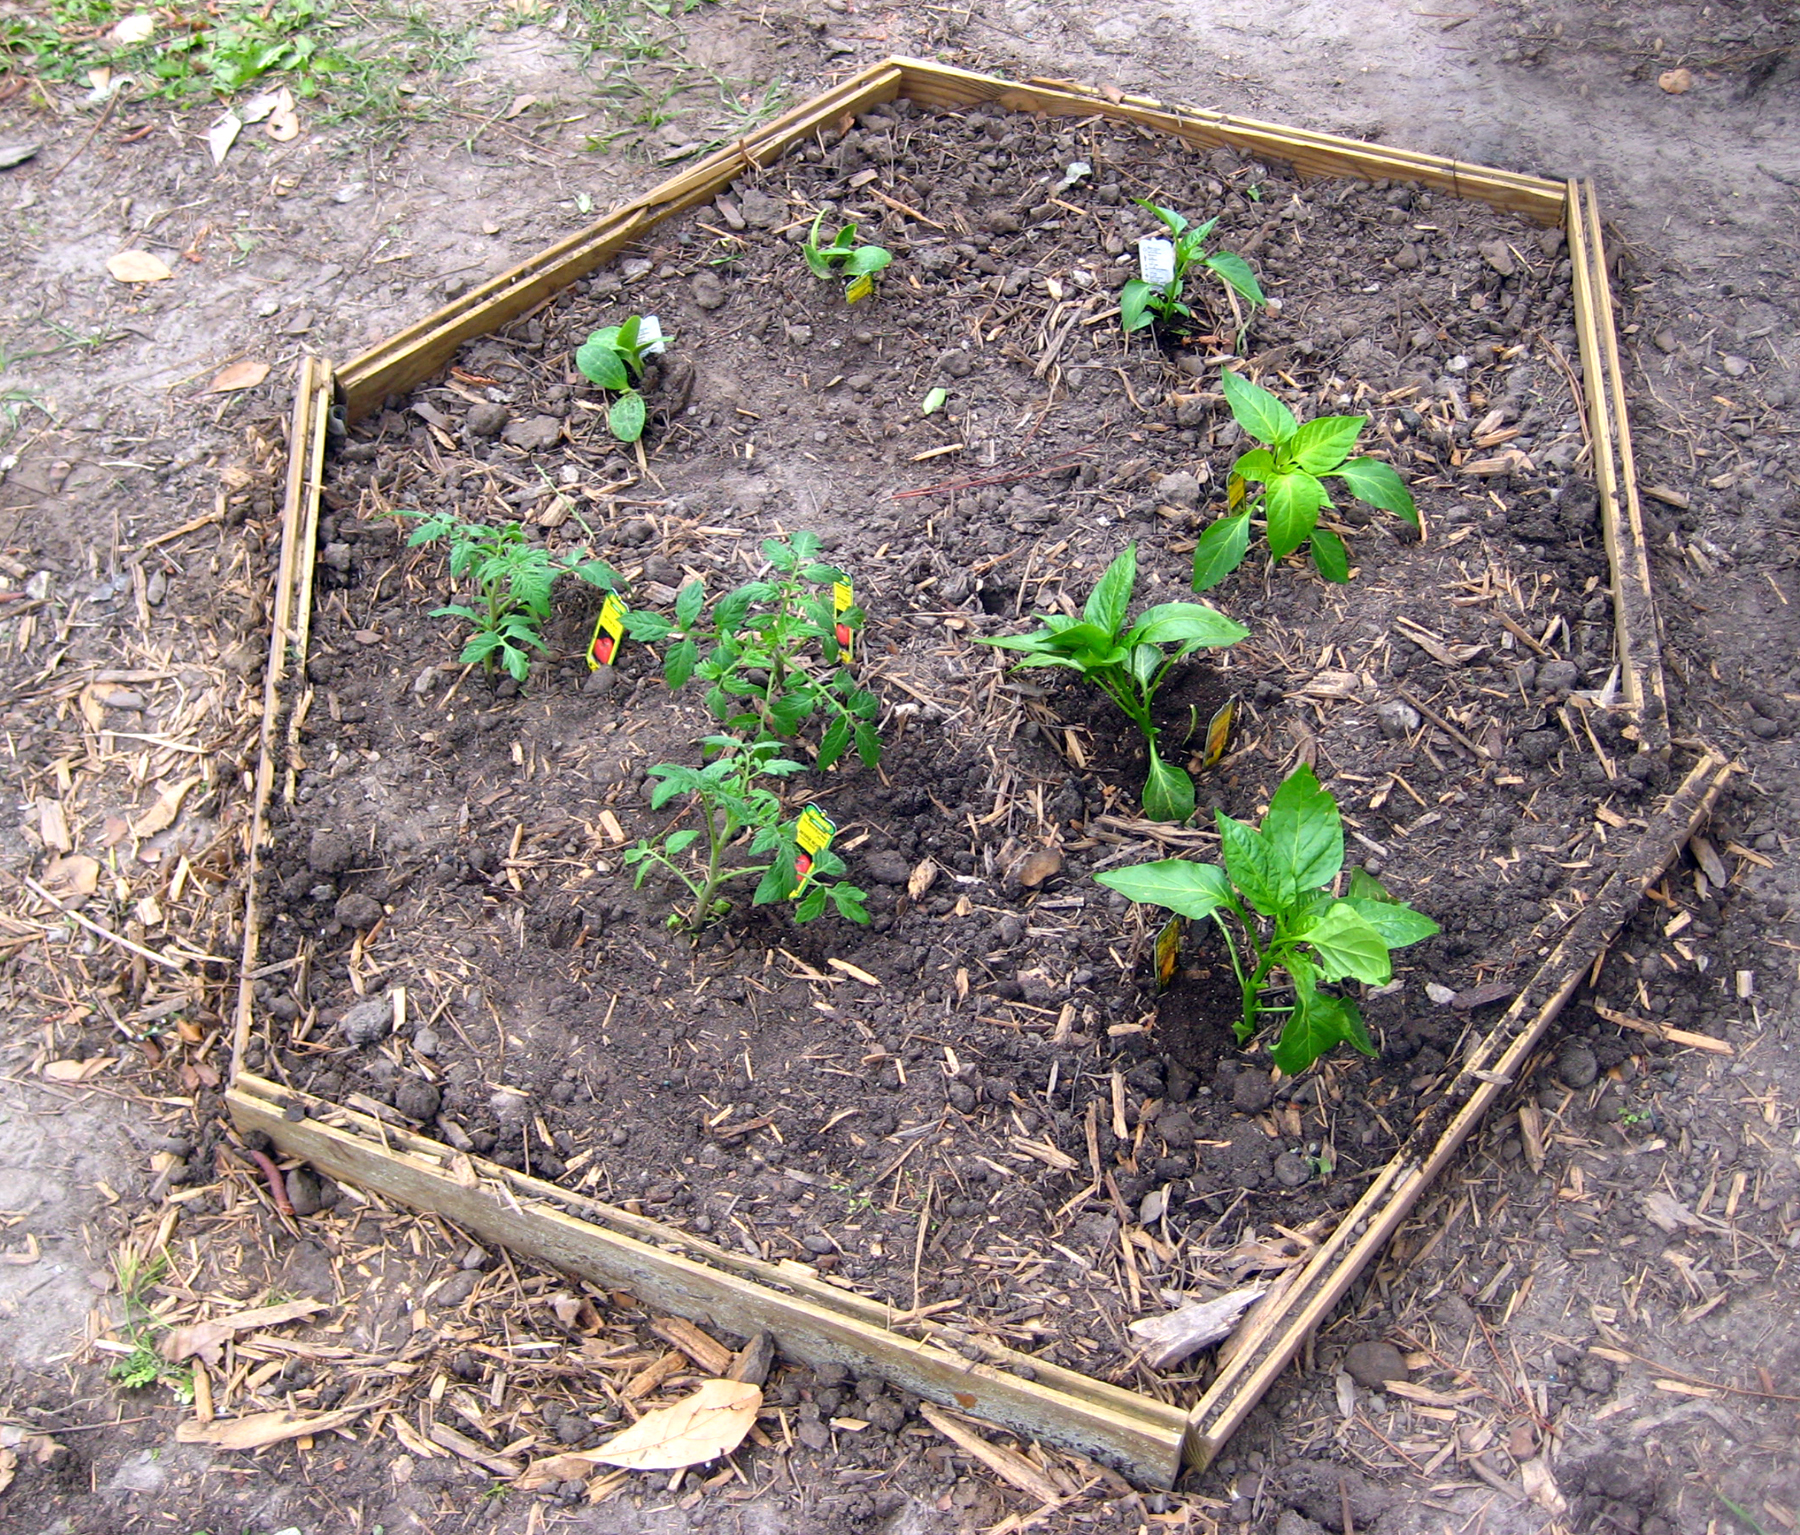 Members of professional agricultural sorority Sigma Alpha planted a pizza garden at Charles Ellis Elementary School in Savannah, Ga., in March 2010.